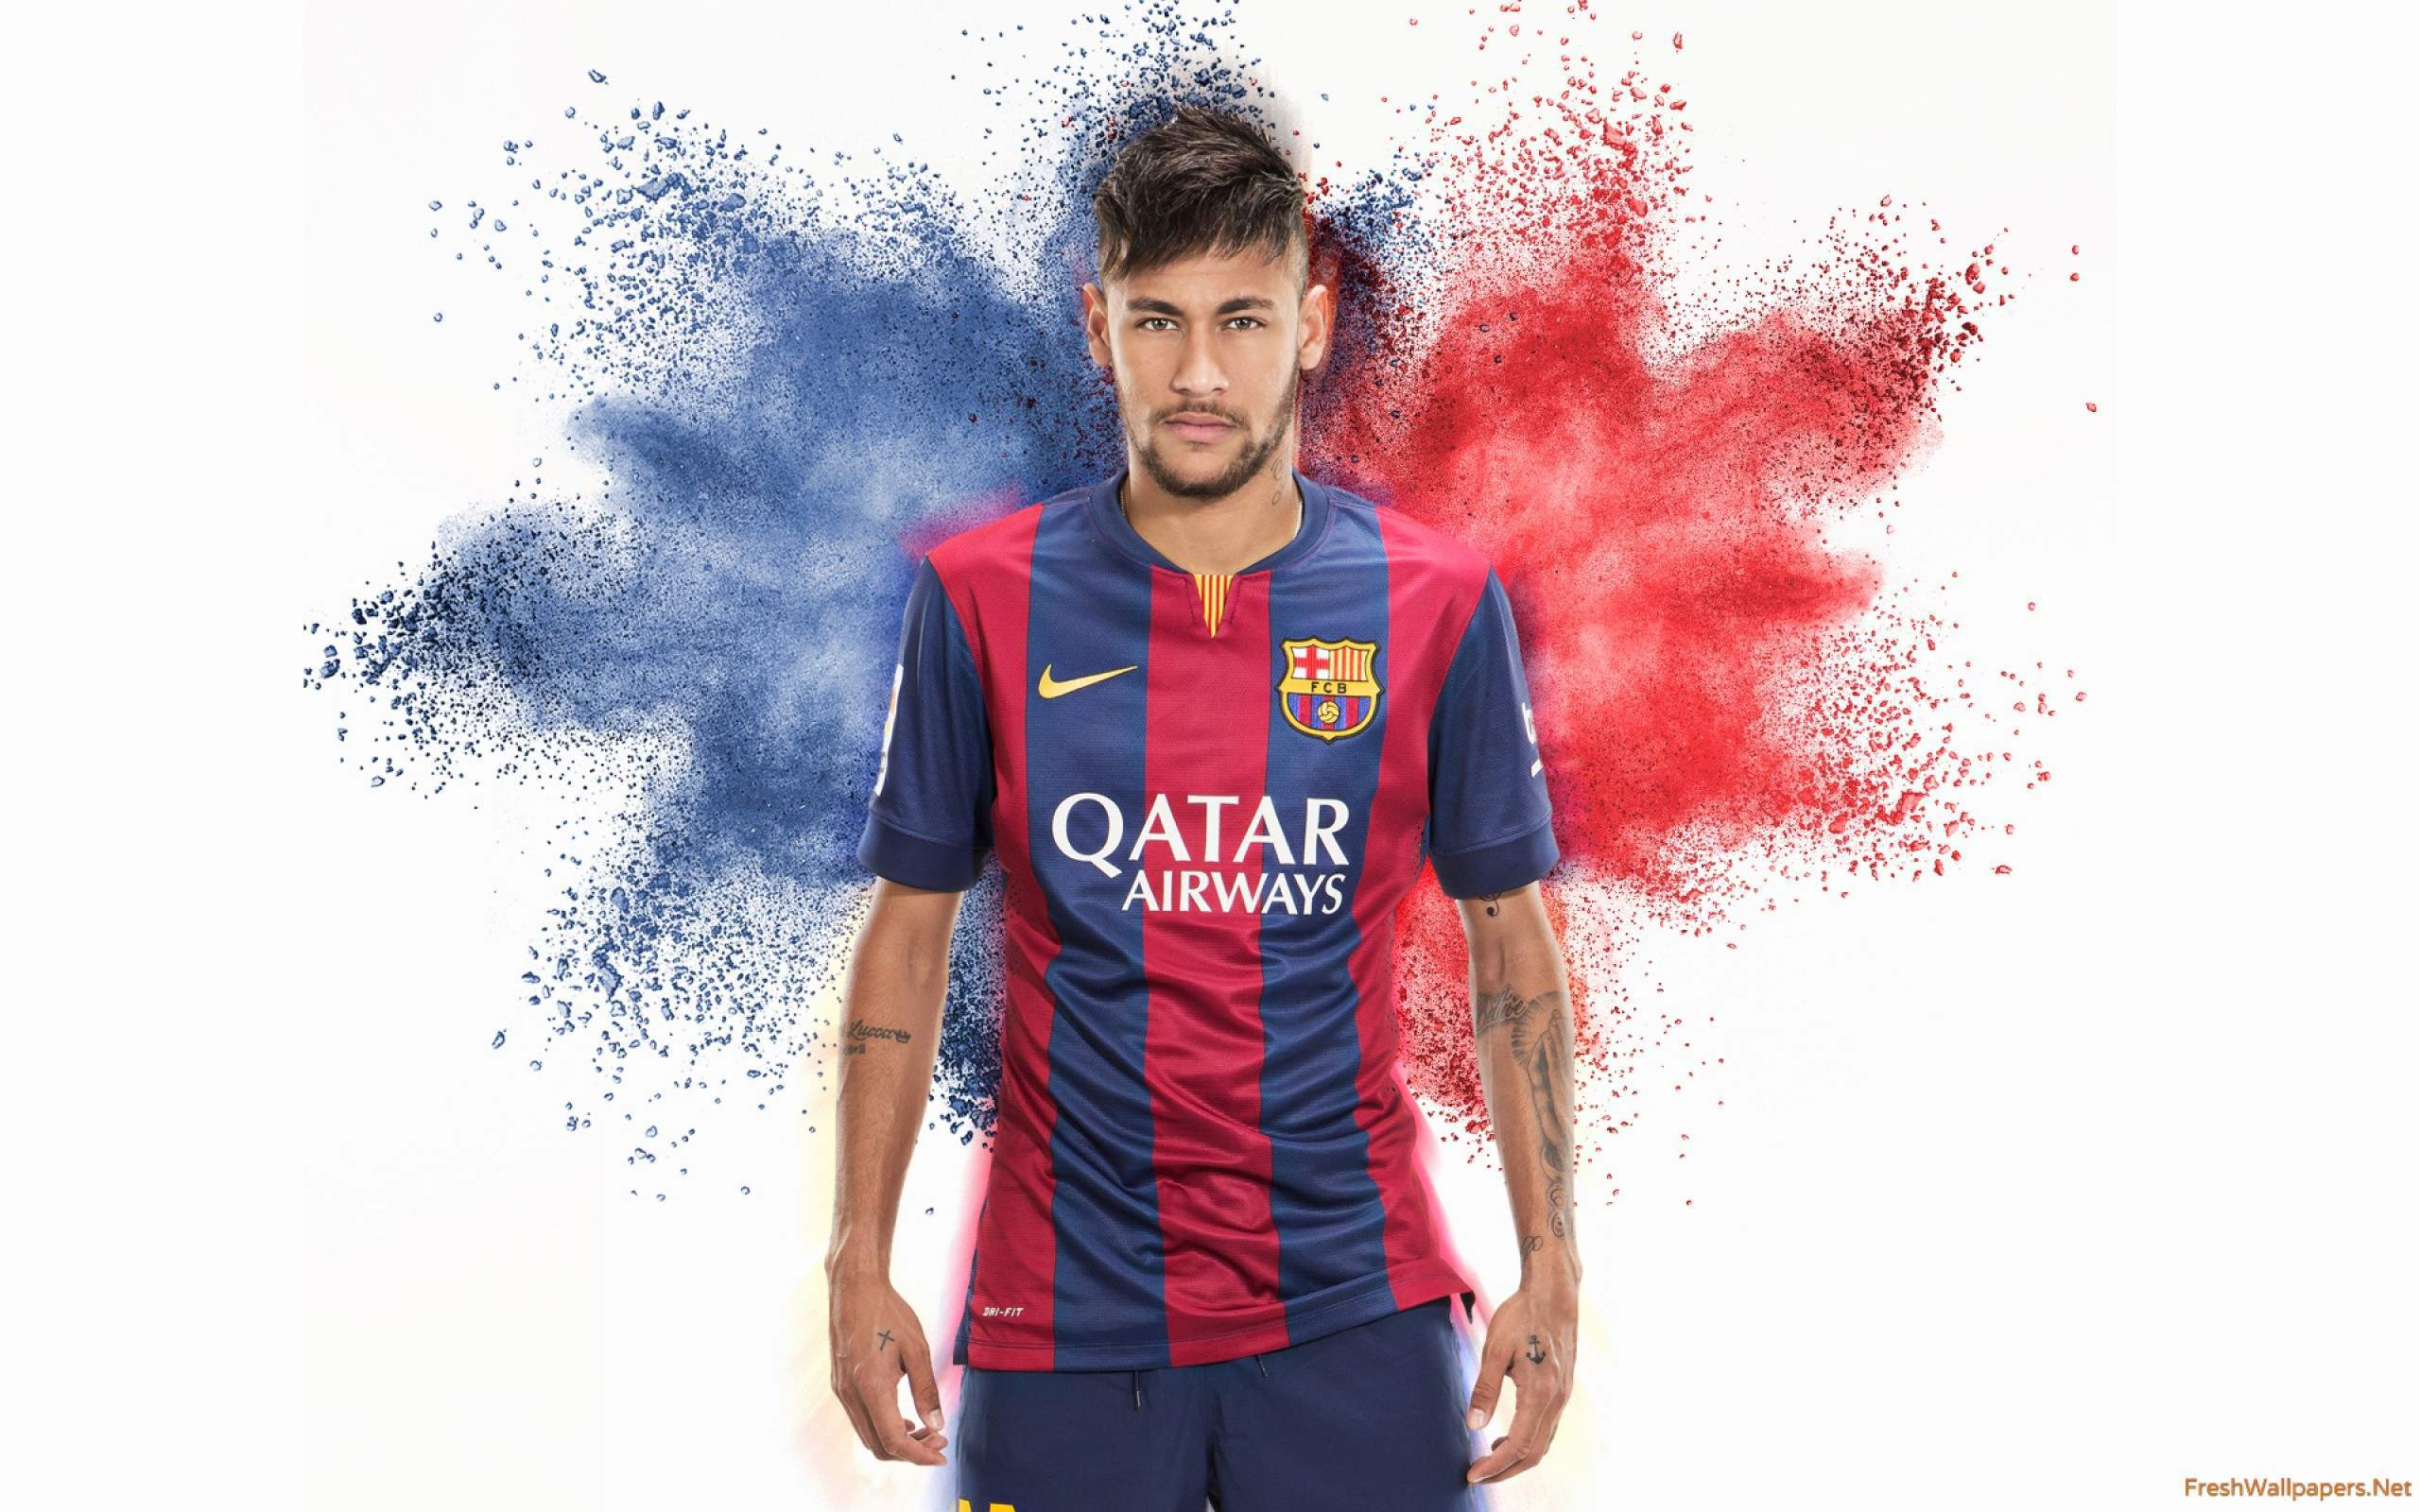 Hd wallpaper neymar - Hd Wallpaper Neymar 0